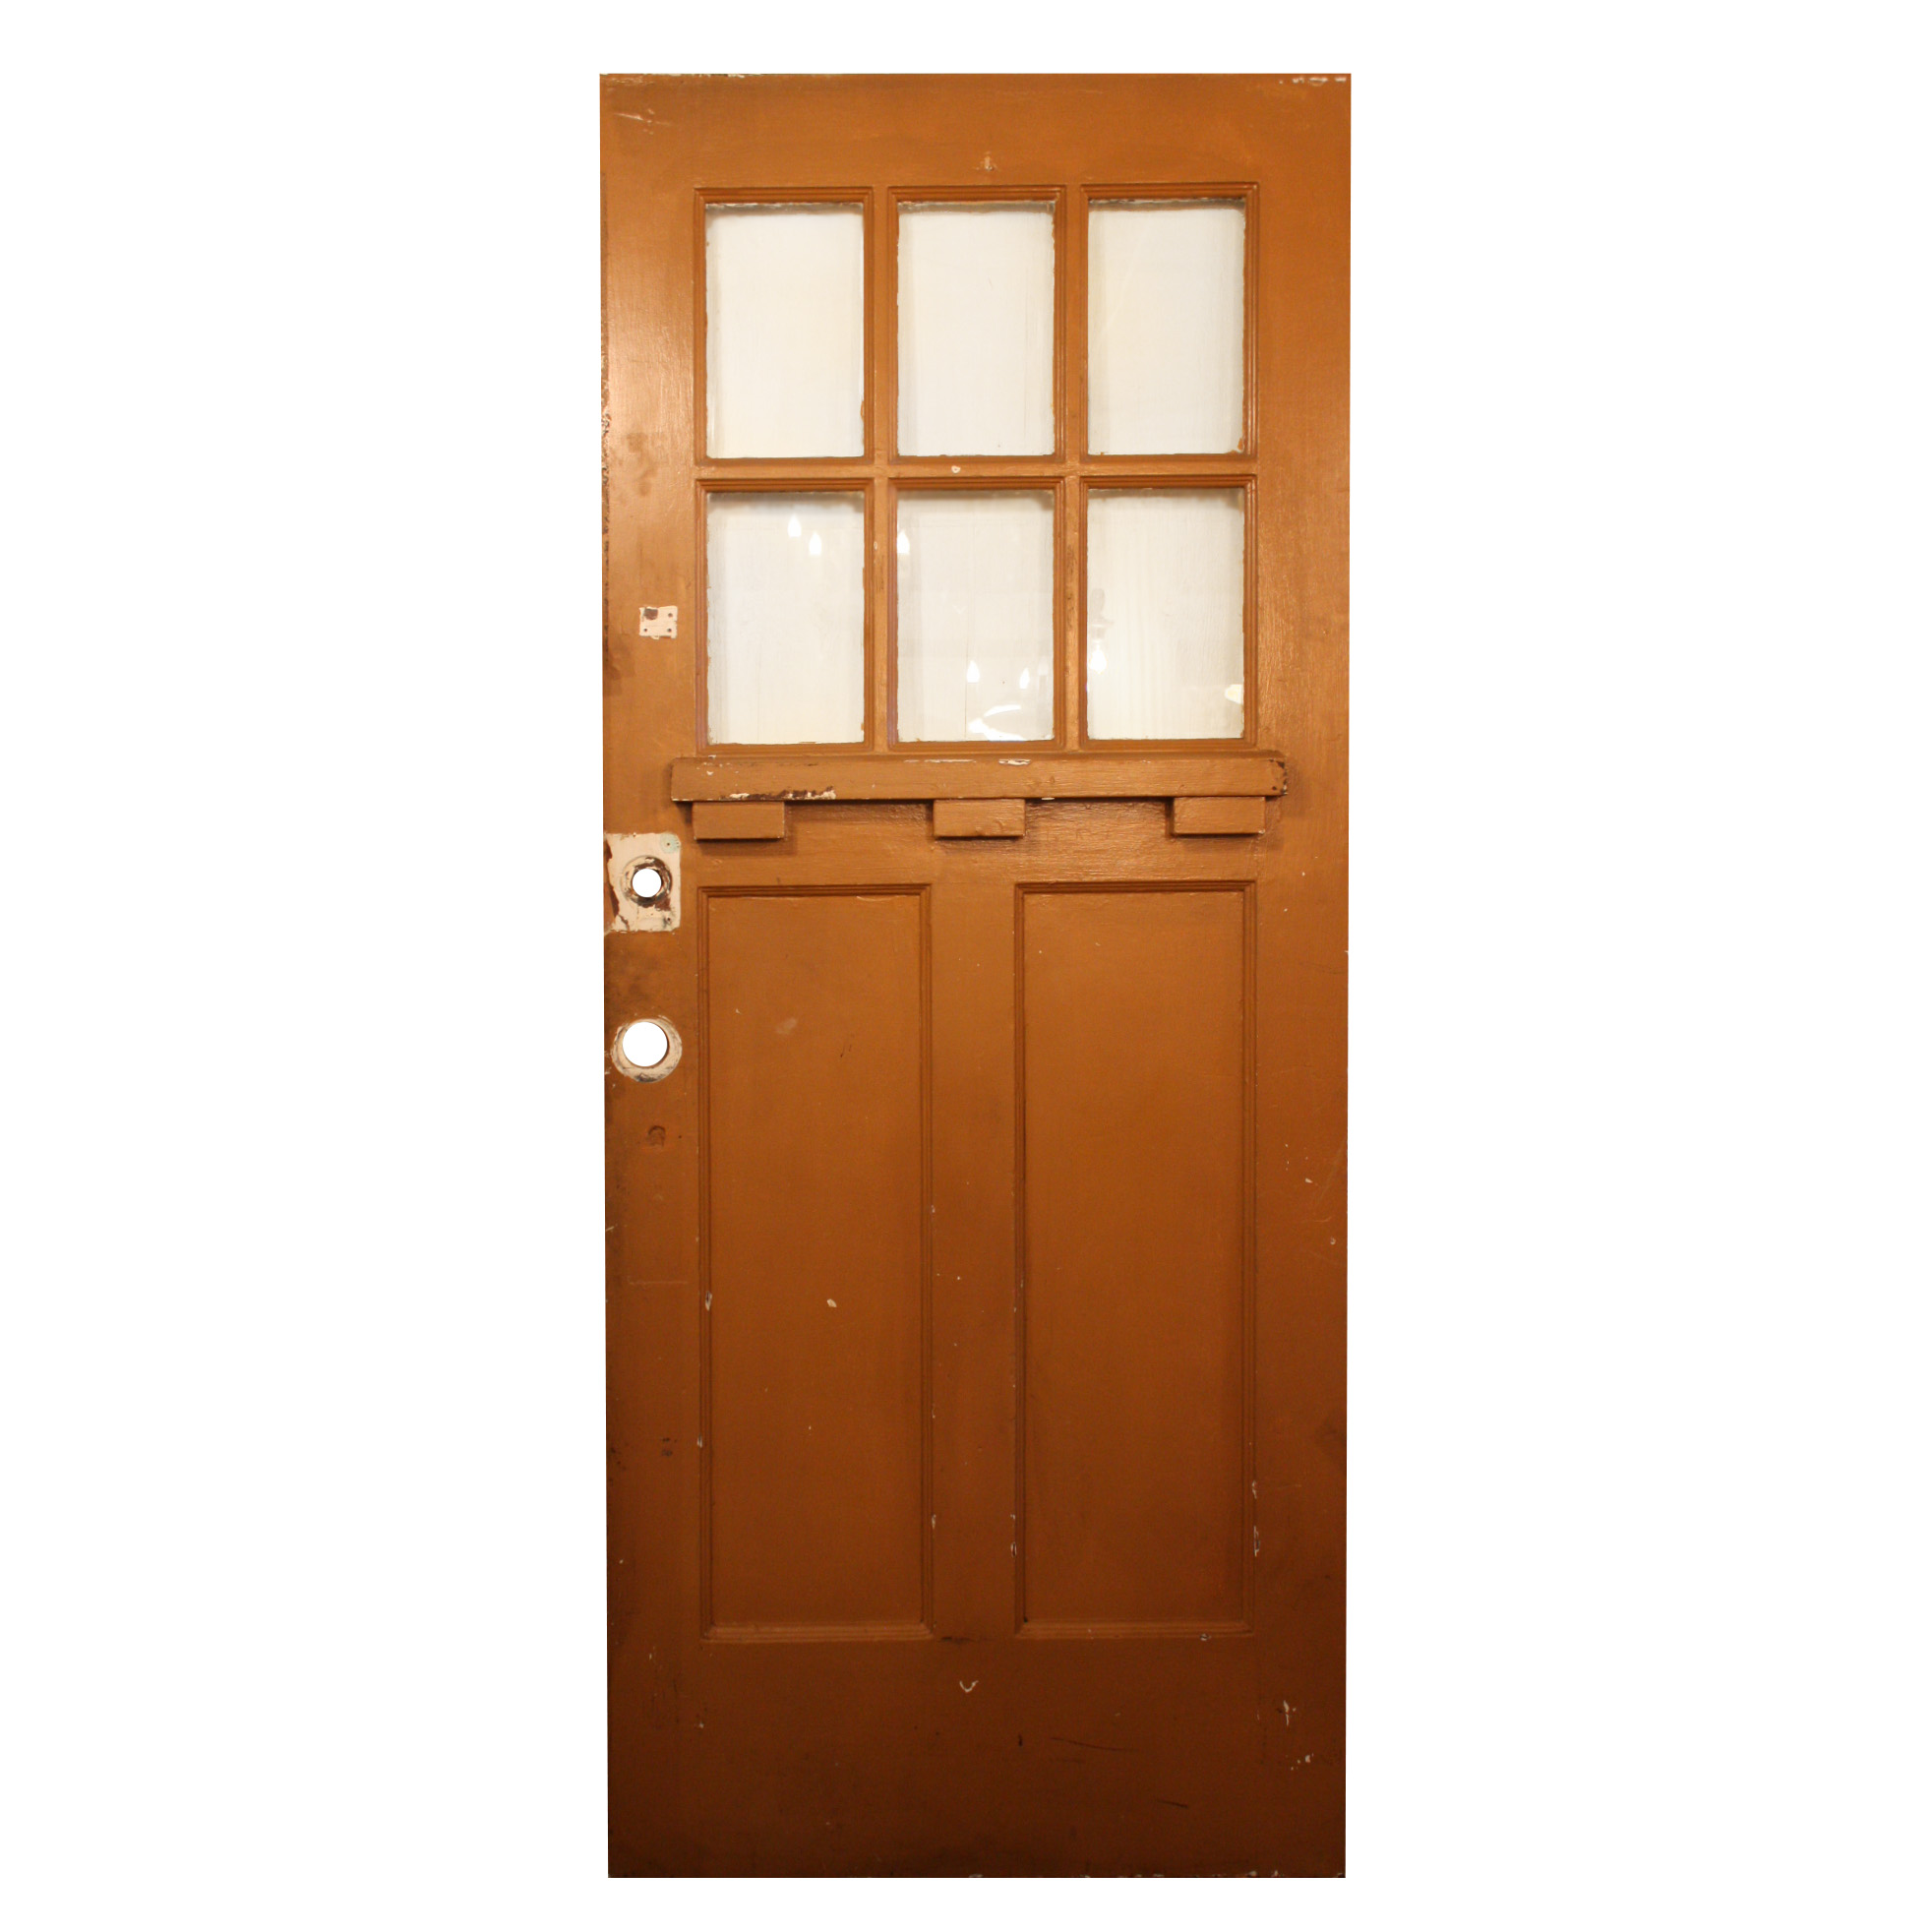 Affordable salvaged arts crafts exterior door with dentil molding ned rw  for sale antiques com arts crafts exterior door with dentil with outside  door  Outside Door Molding  Cheap Window Cap Exterior Usage Photo With  . Exterior Dentil Molding Sale. Home Design Ideas